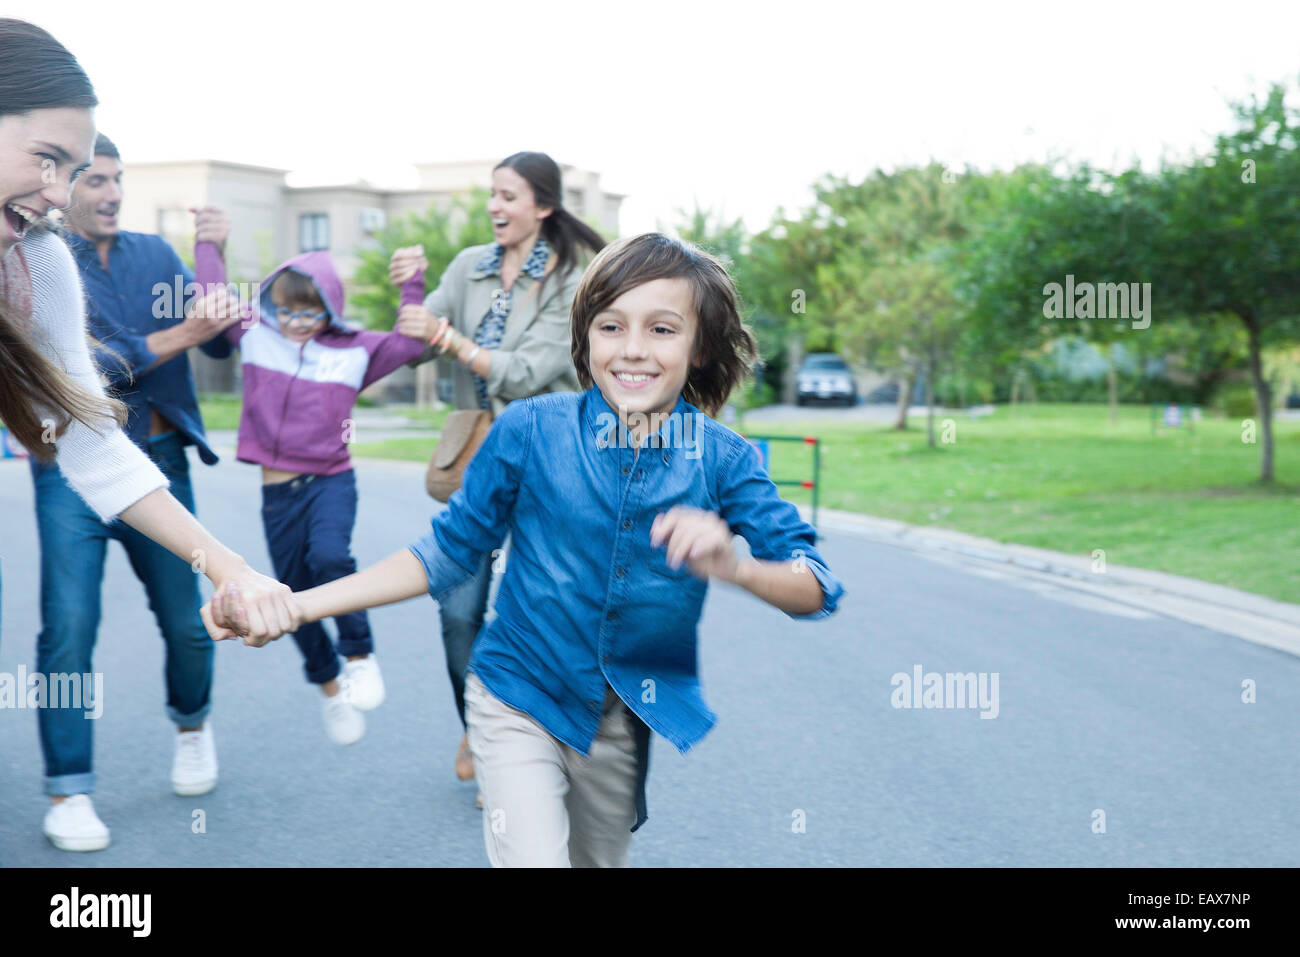 Family playing together outdoors Stock Photo